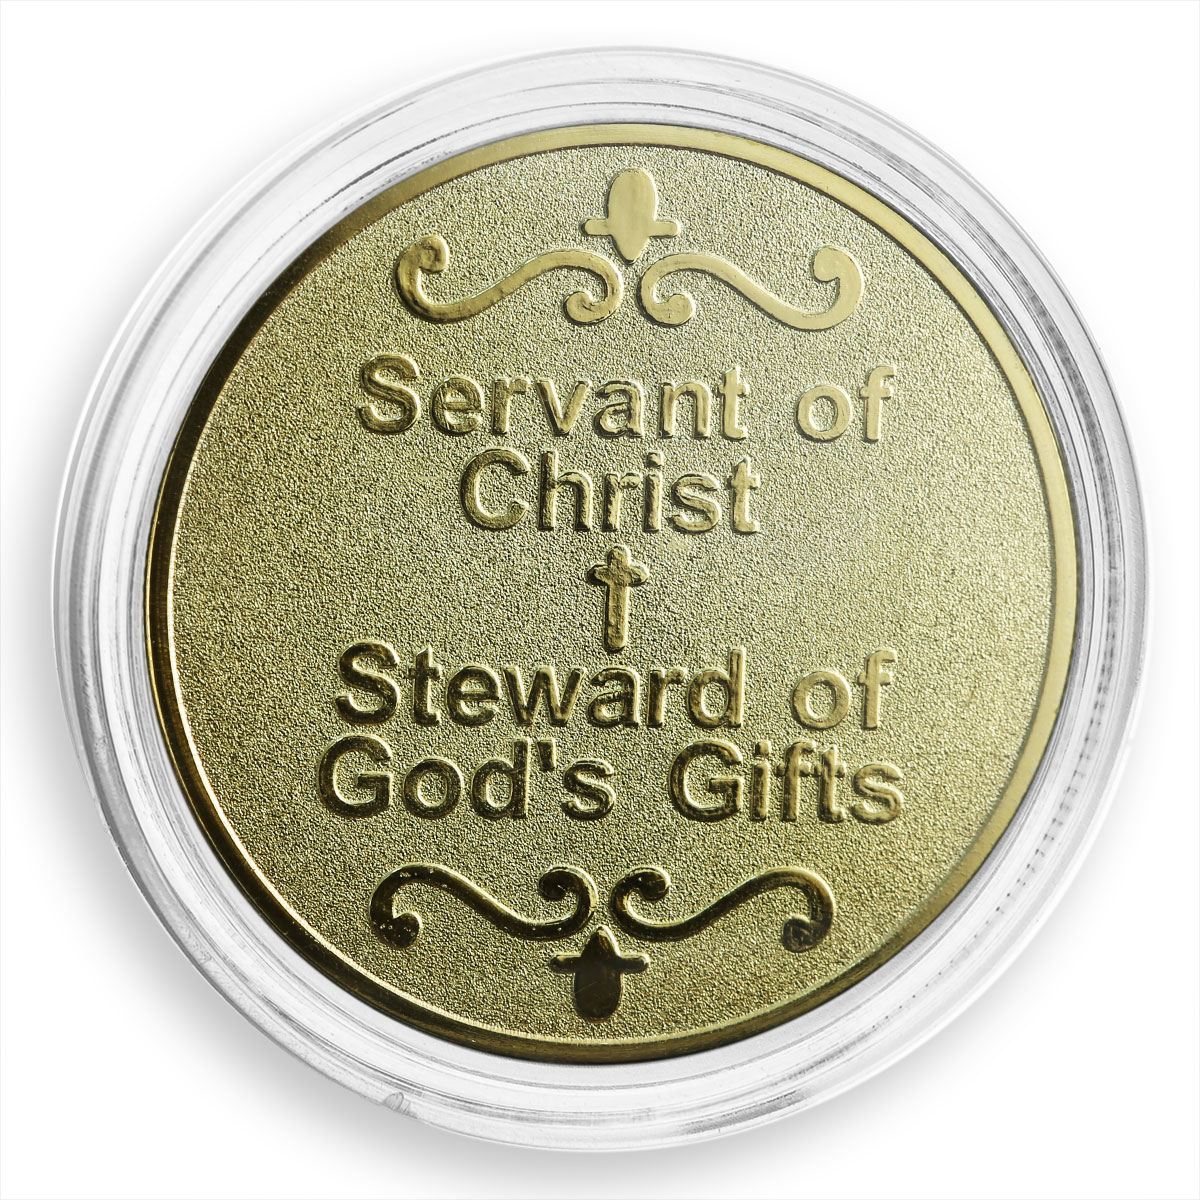 The servants of Christ and stewards of God's gifts, Cross, gilded token